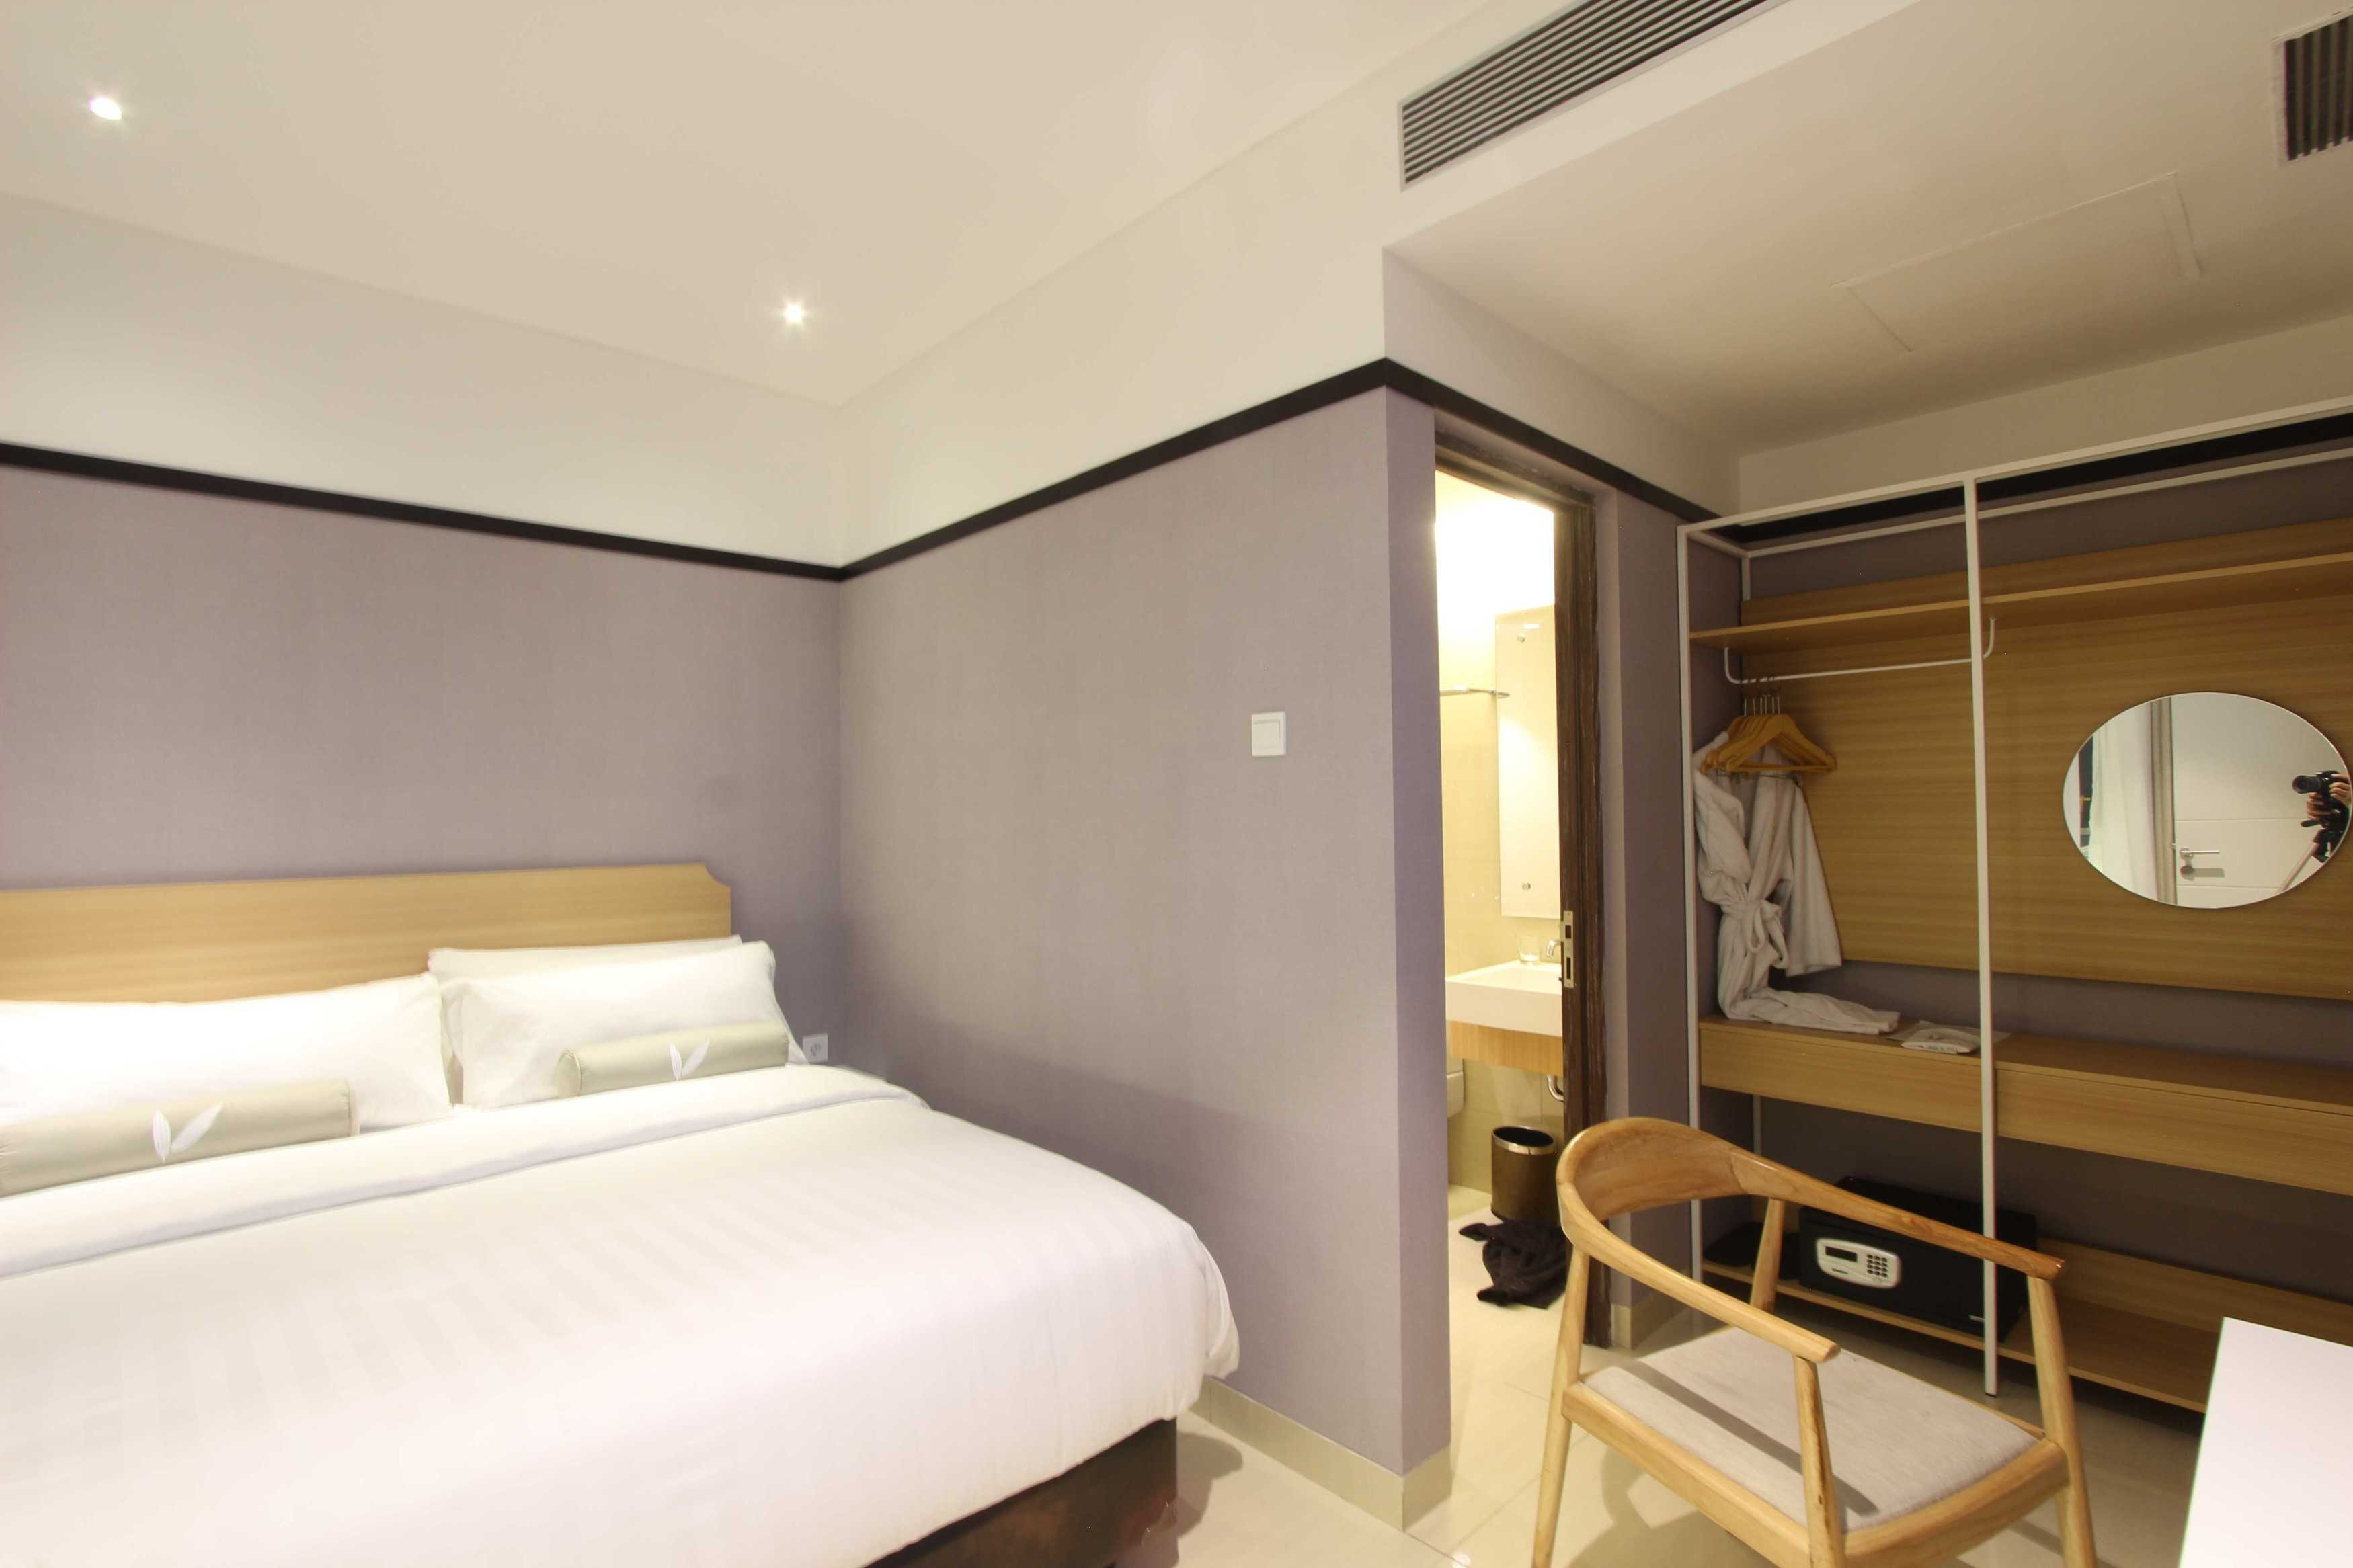 Arkitekt.id Executive Suite Room No 2 Clove Garden Hotel, Bandung Clove Garden Hotel, Bandung Bedroom Kontemporer  29458